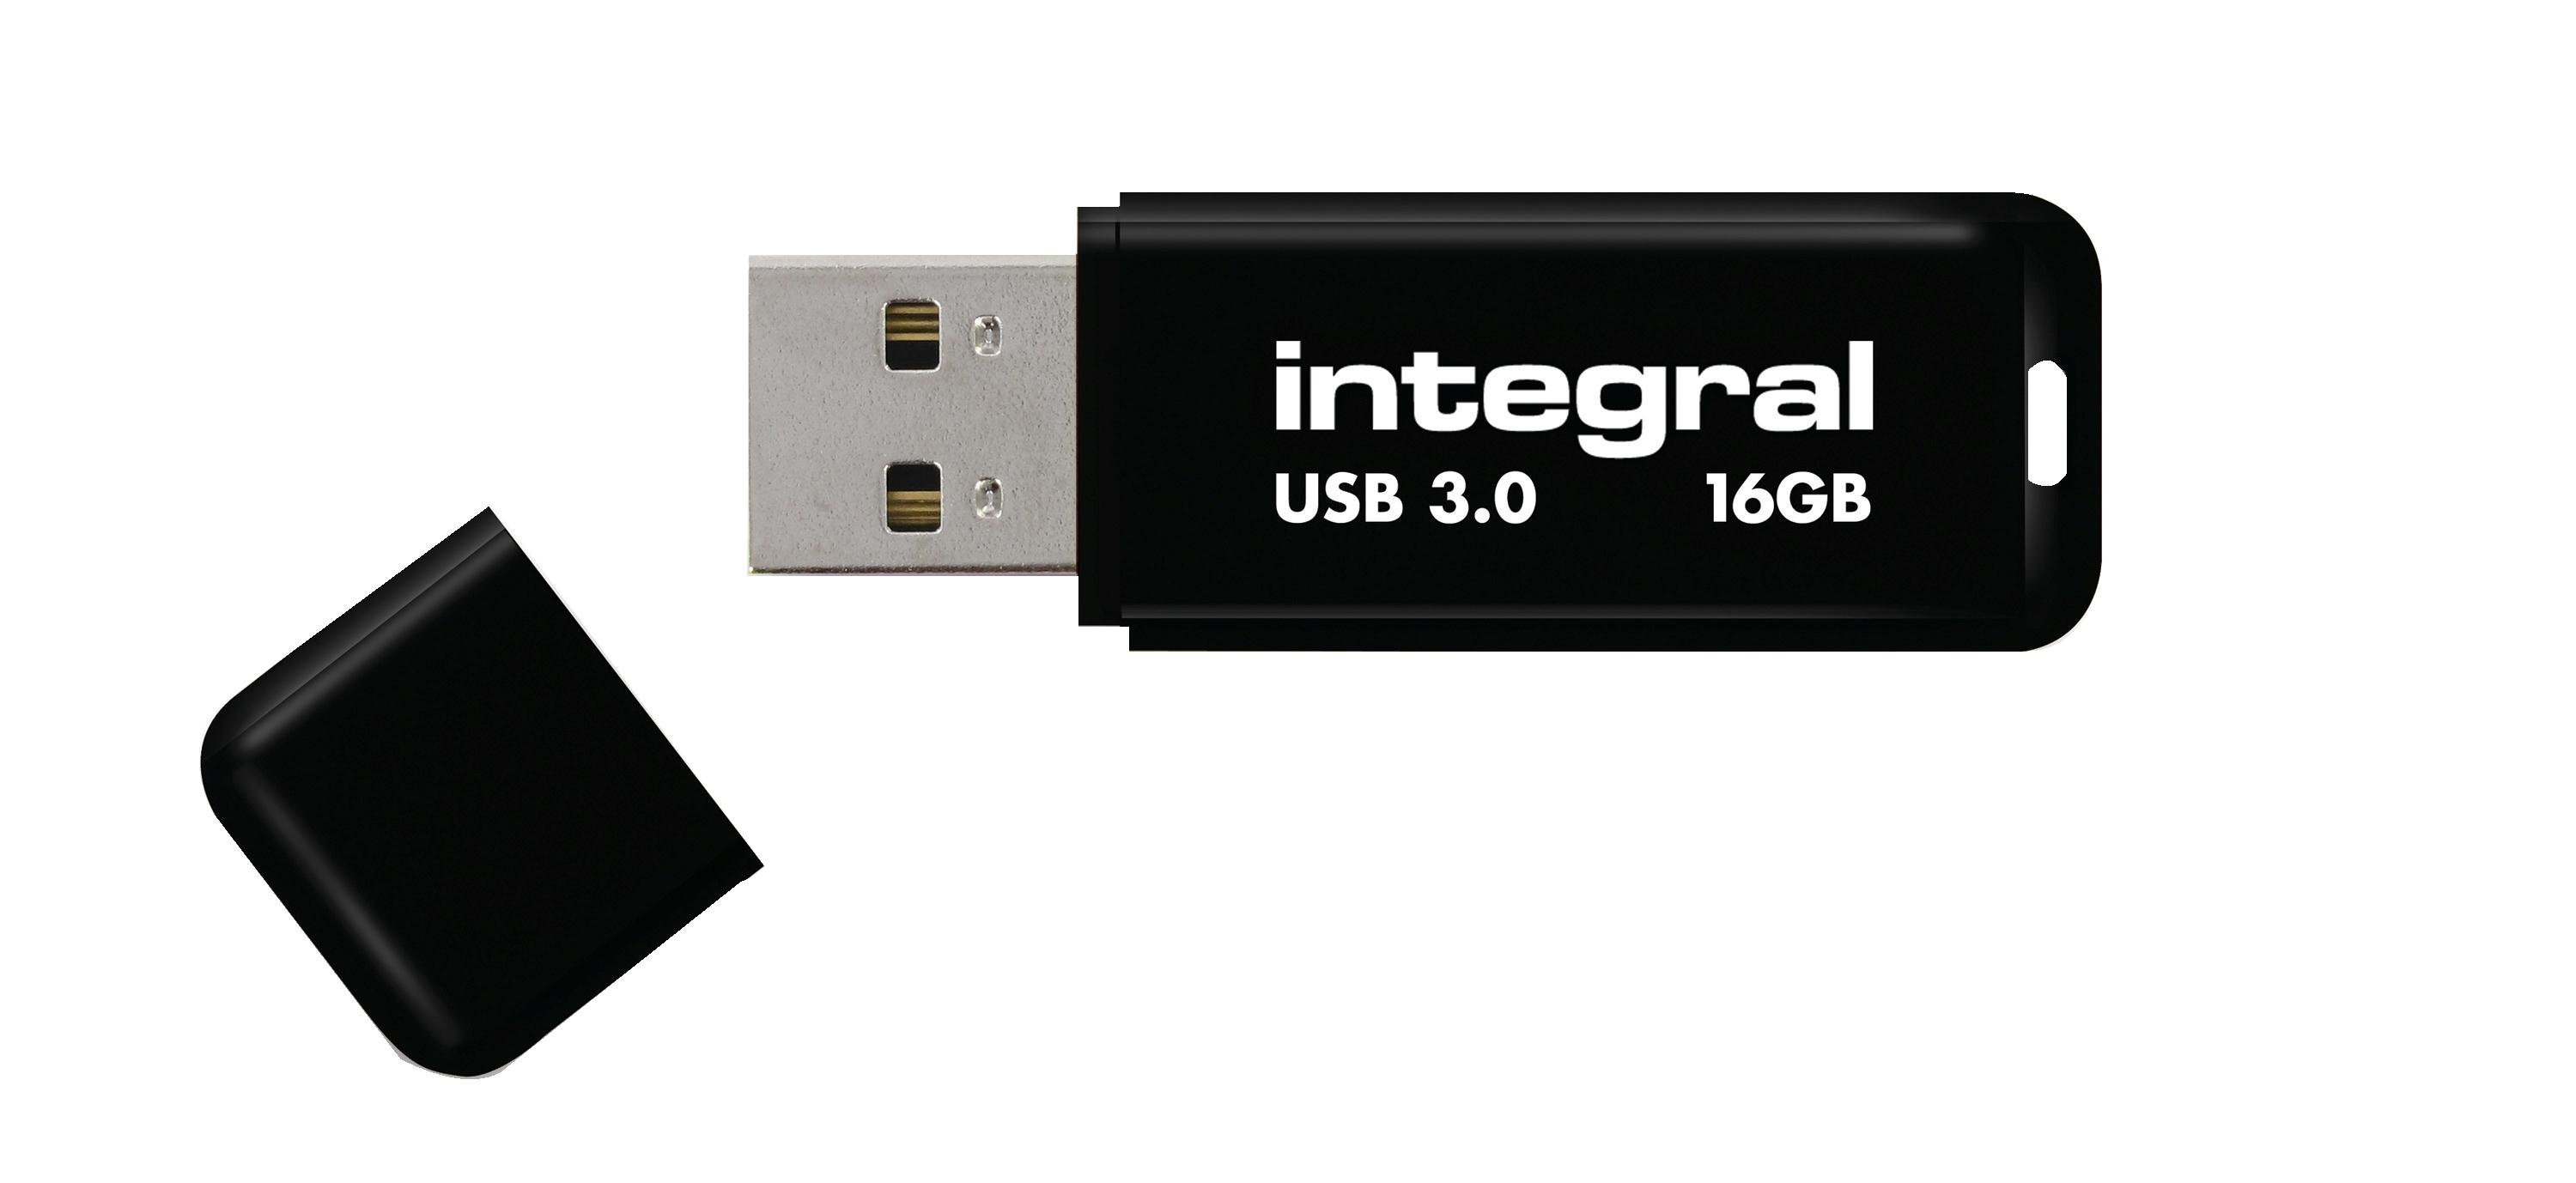 Integral Noir Flash Drive USB 3.0 16GB Ref INFD16GBNOIR3.0